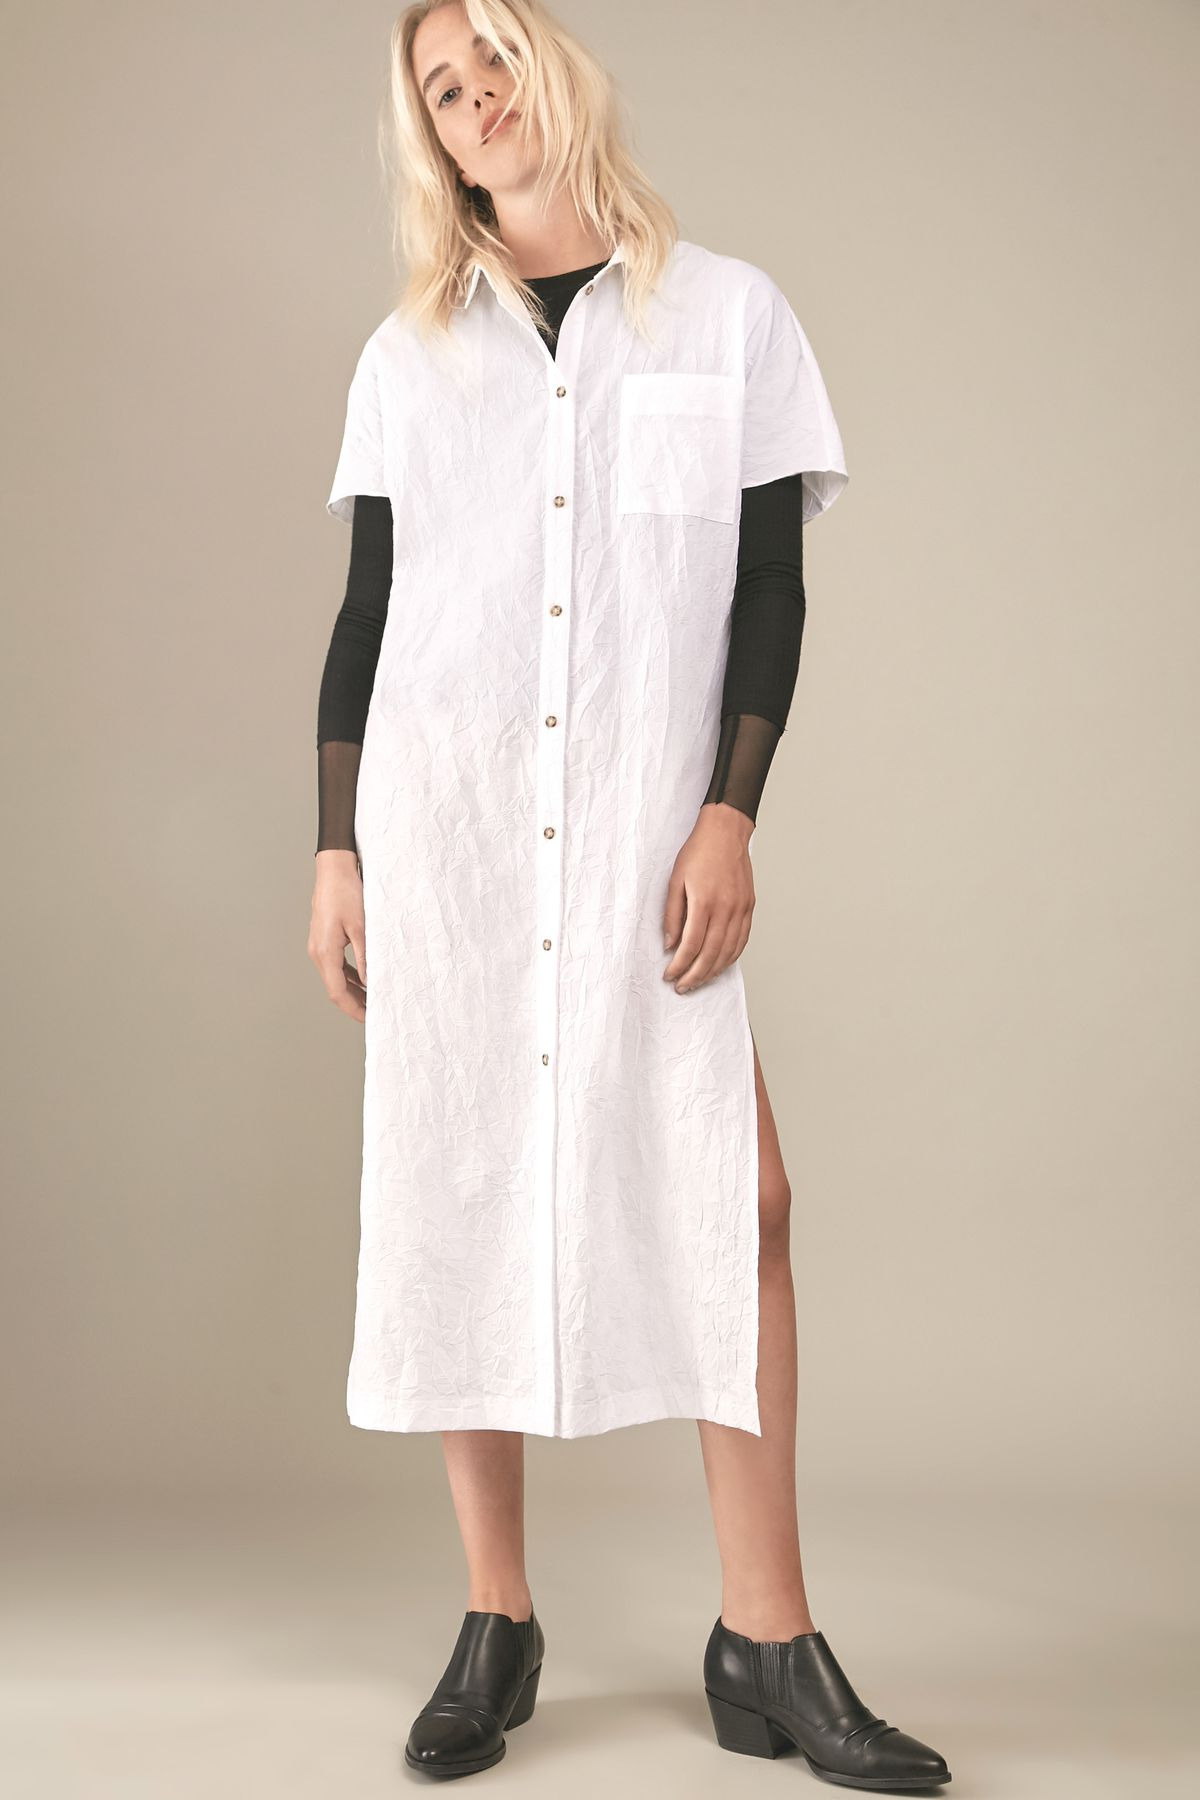 White blonde model wearing oversized white shirt dress with black ankle boots